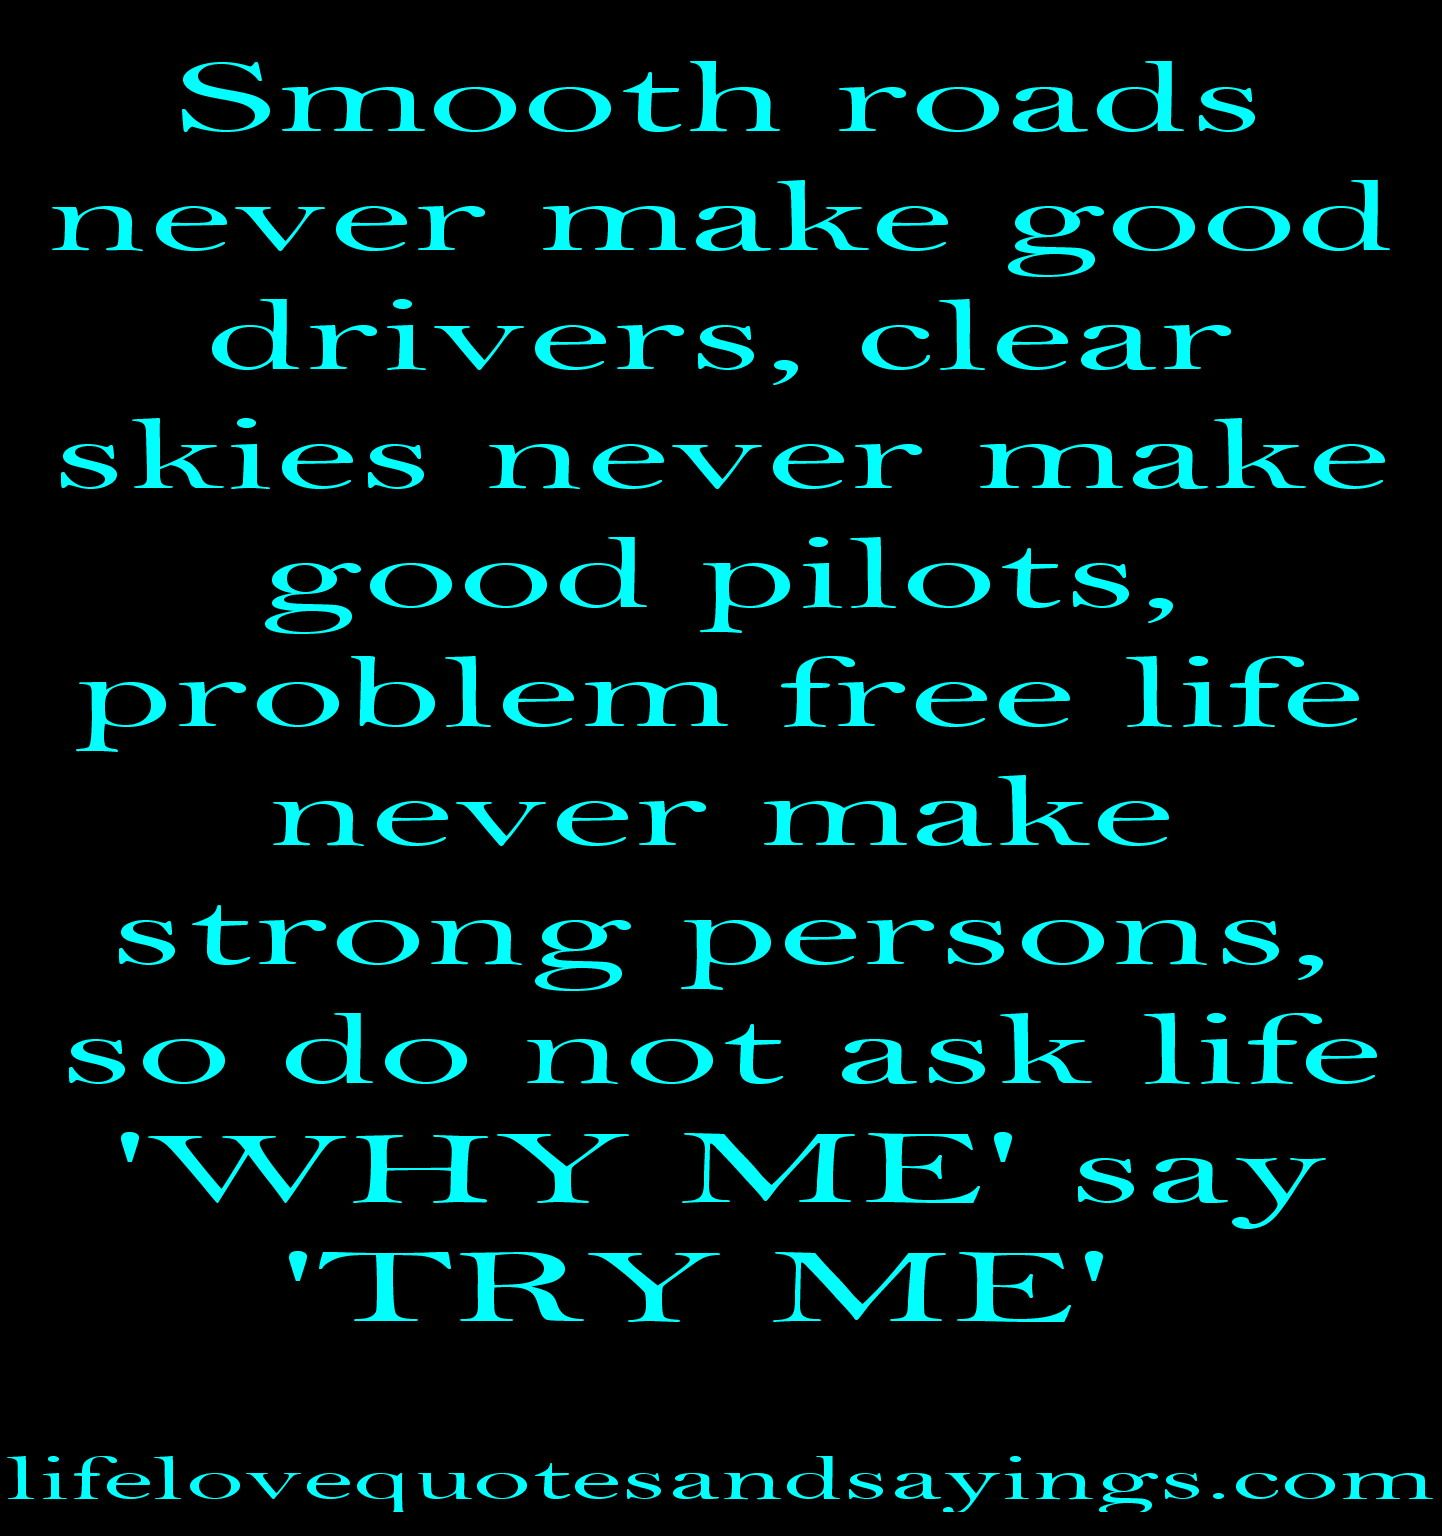 Smooth roads never make good drivers, clear skies never ...